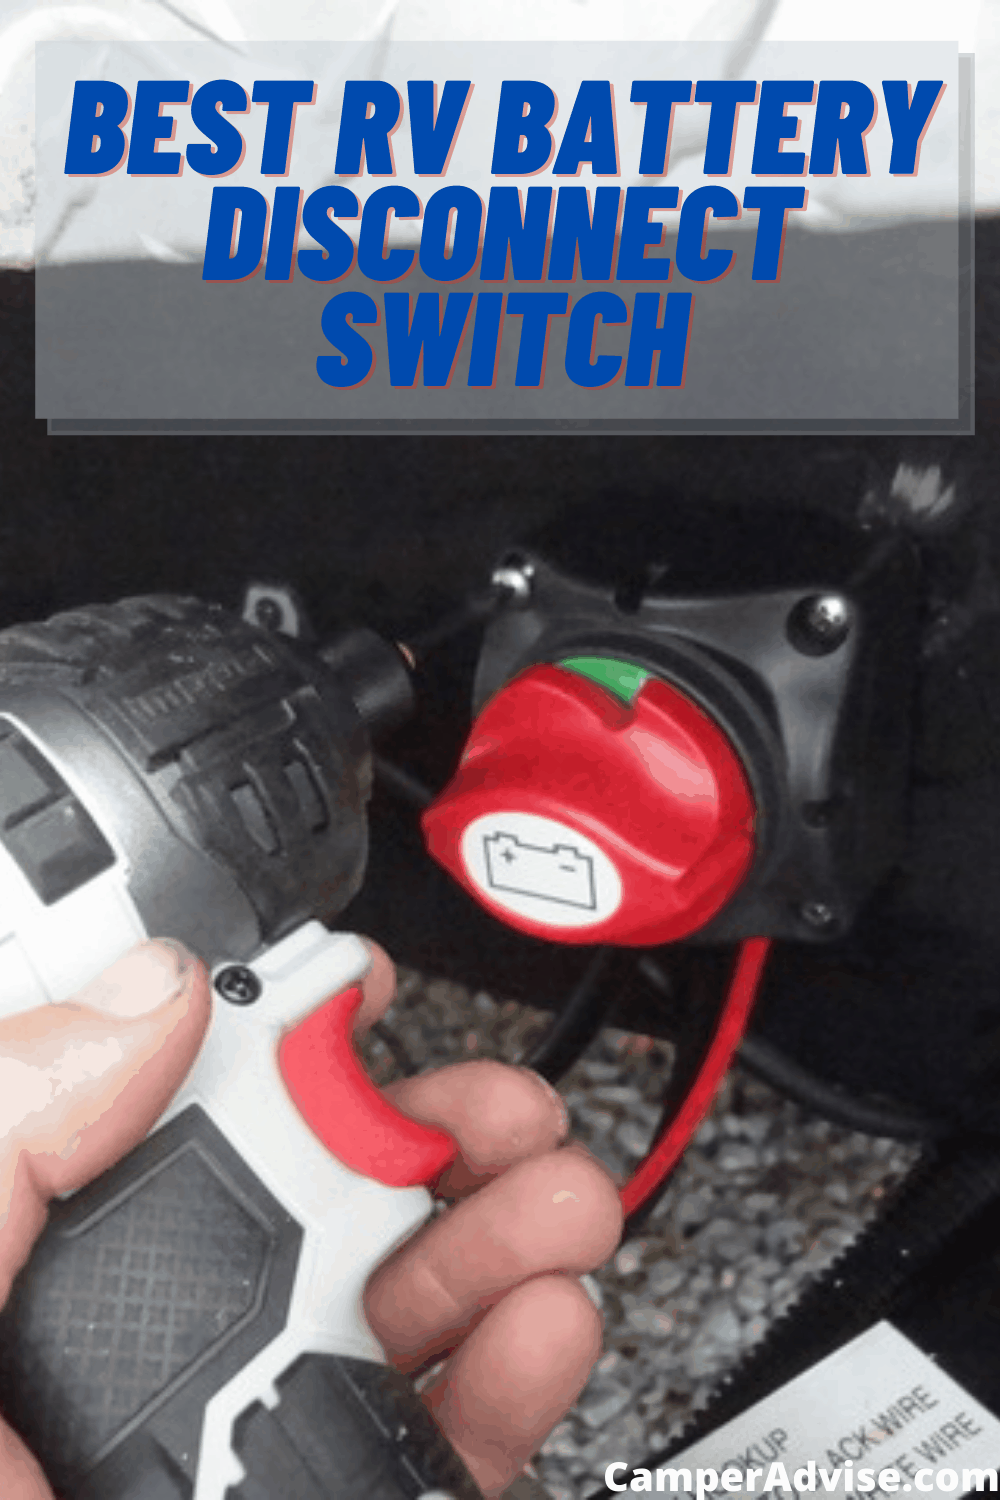 Best RV Battery Disconnect Switch